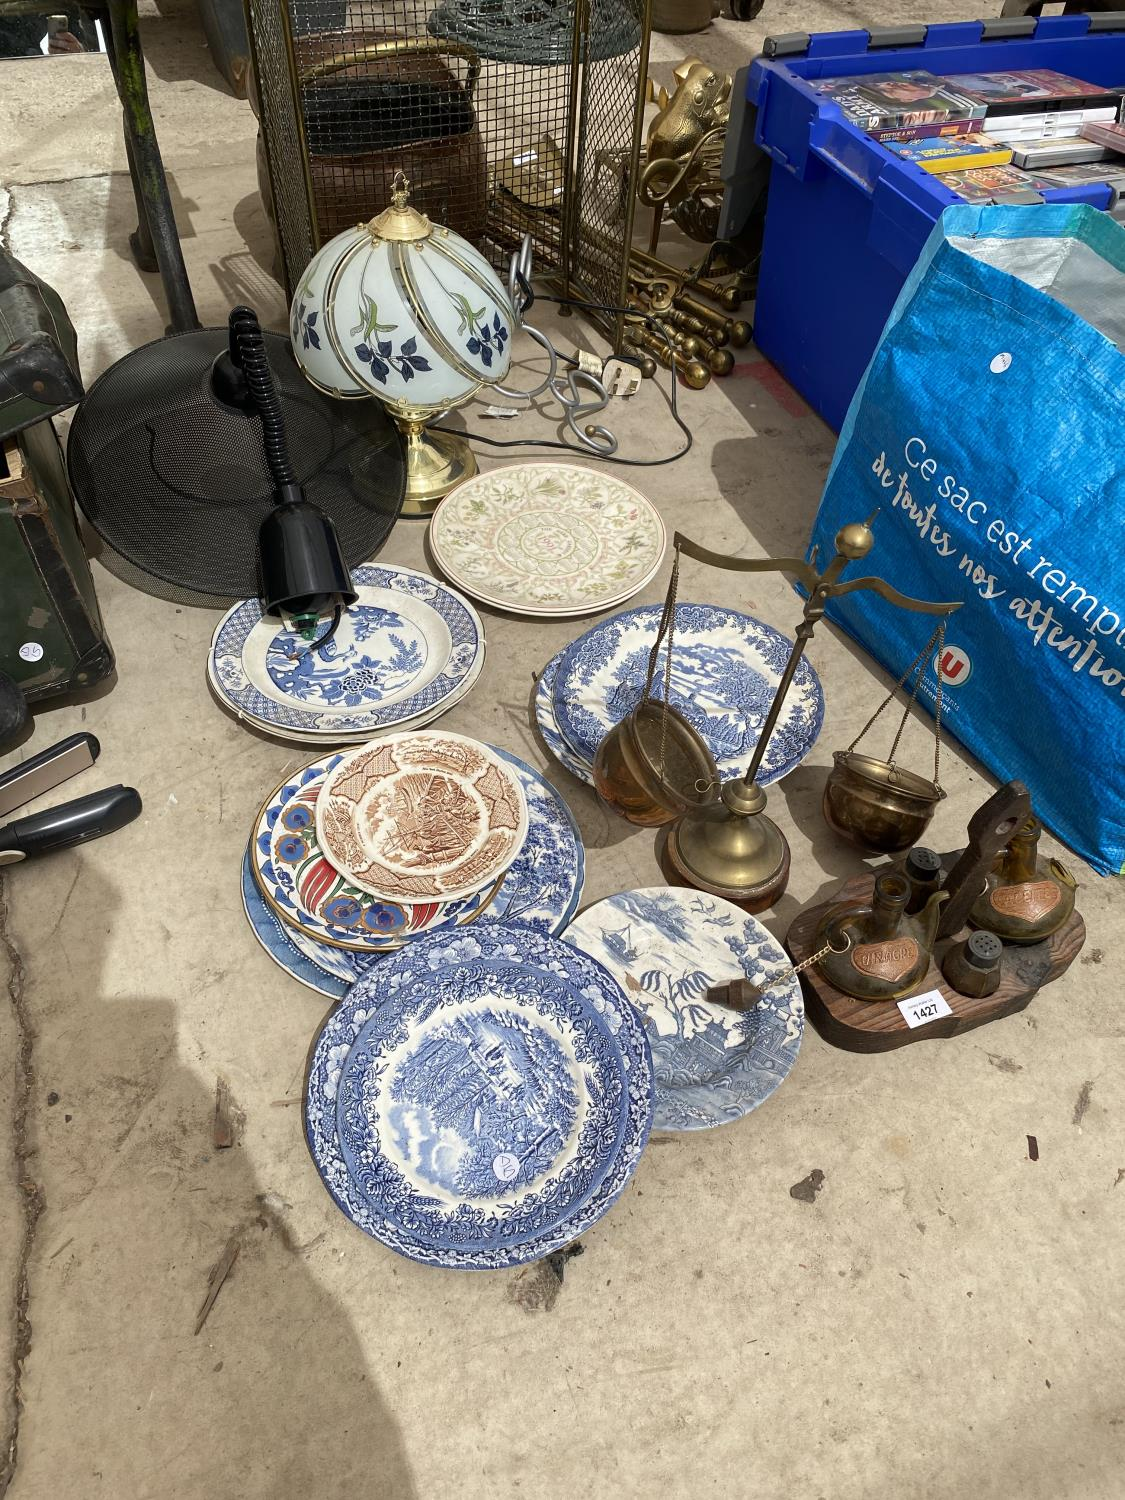 AN ASSORTMENT OF ITEMS TO INCLUDE BLUE AND WHITE CERAMICS PLATES, A GLASS LAMP AND BALANCE SCALES